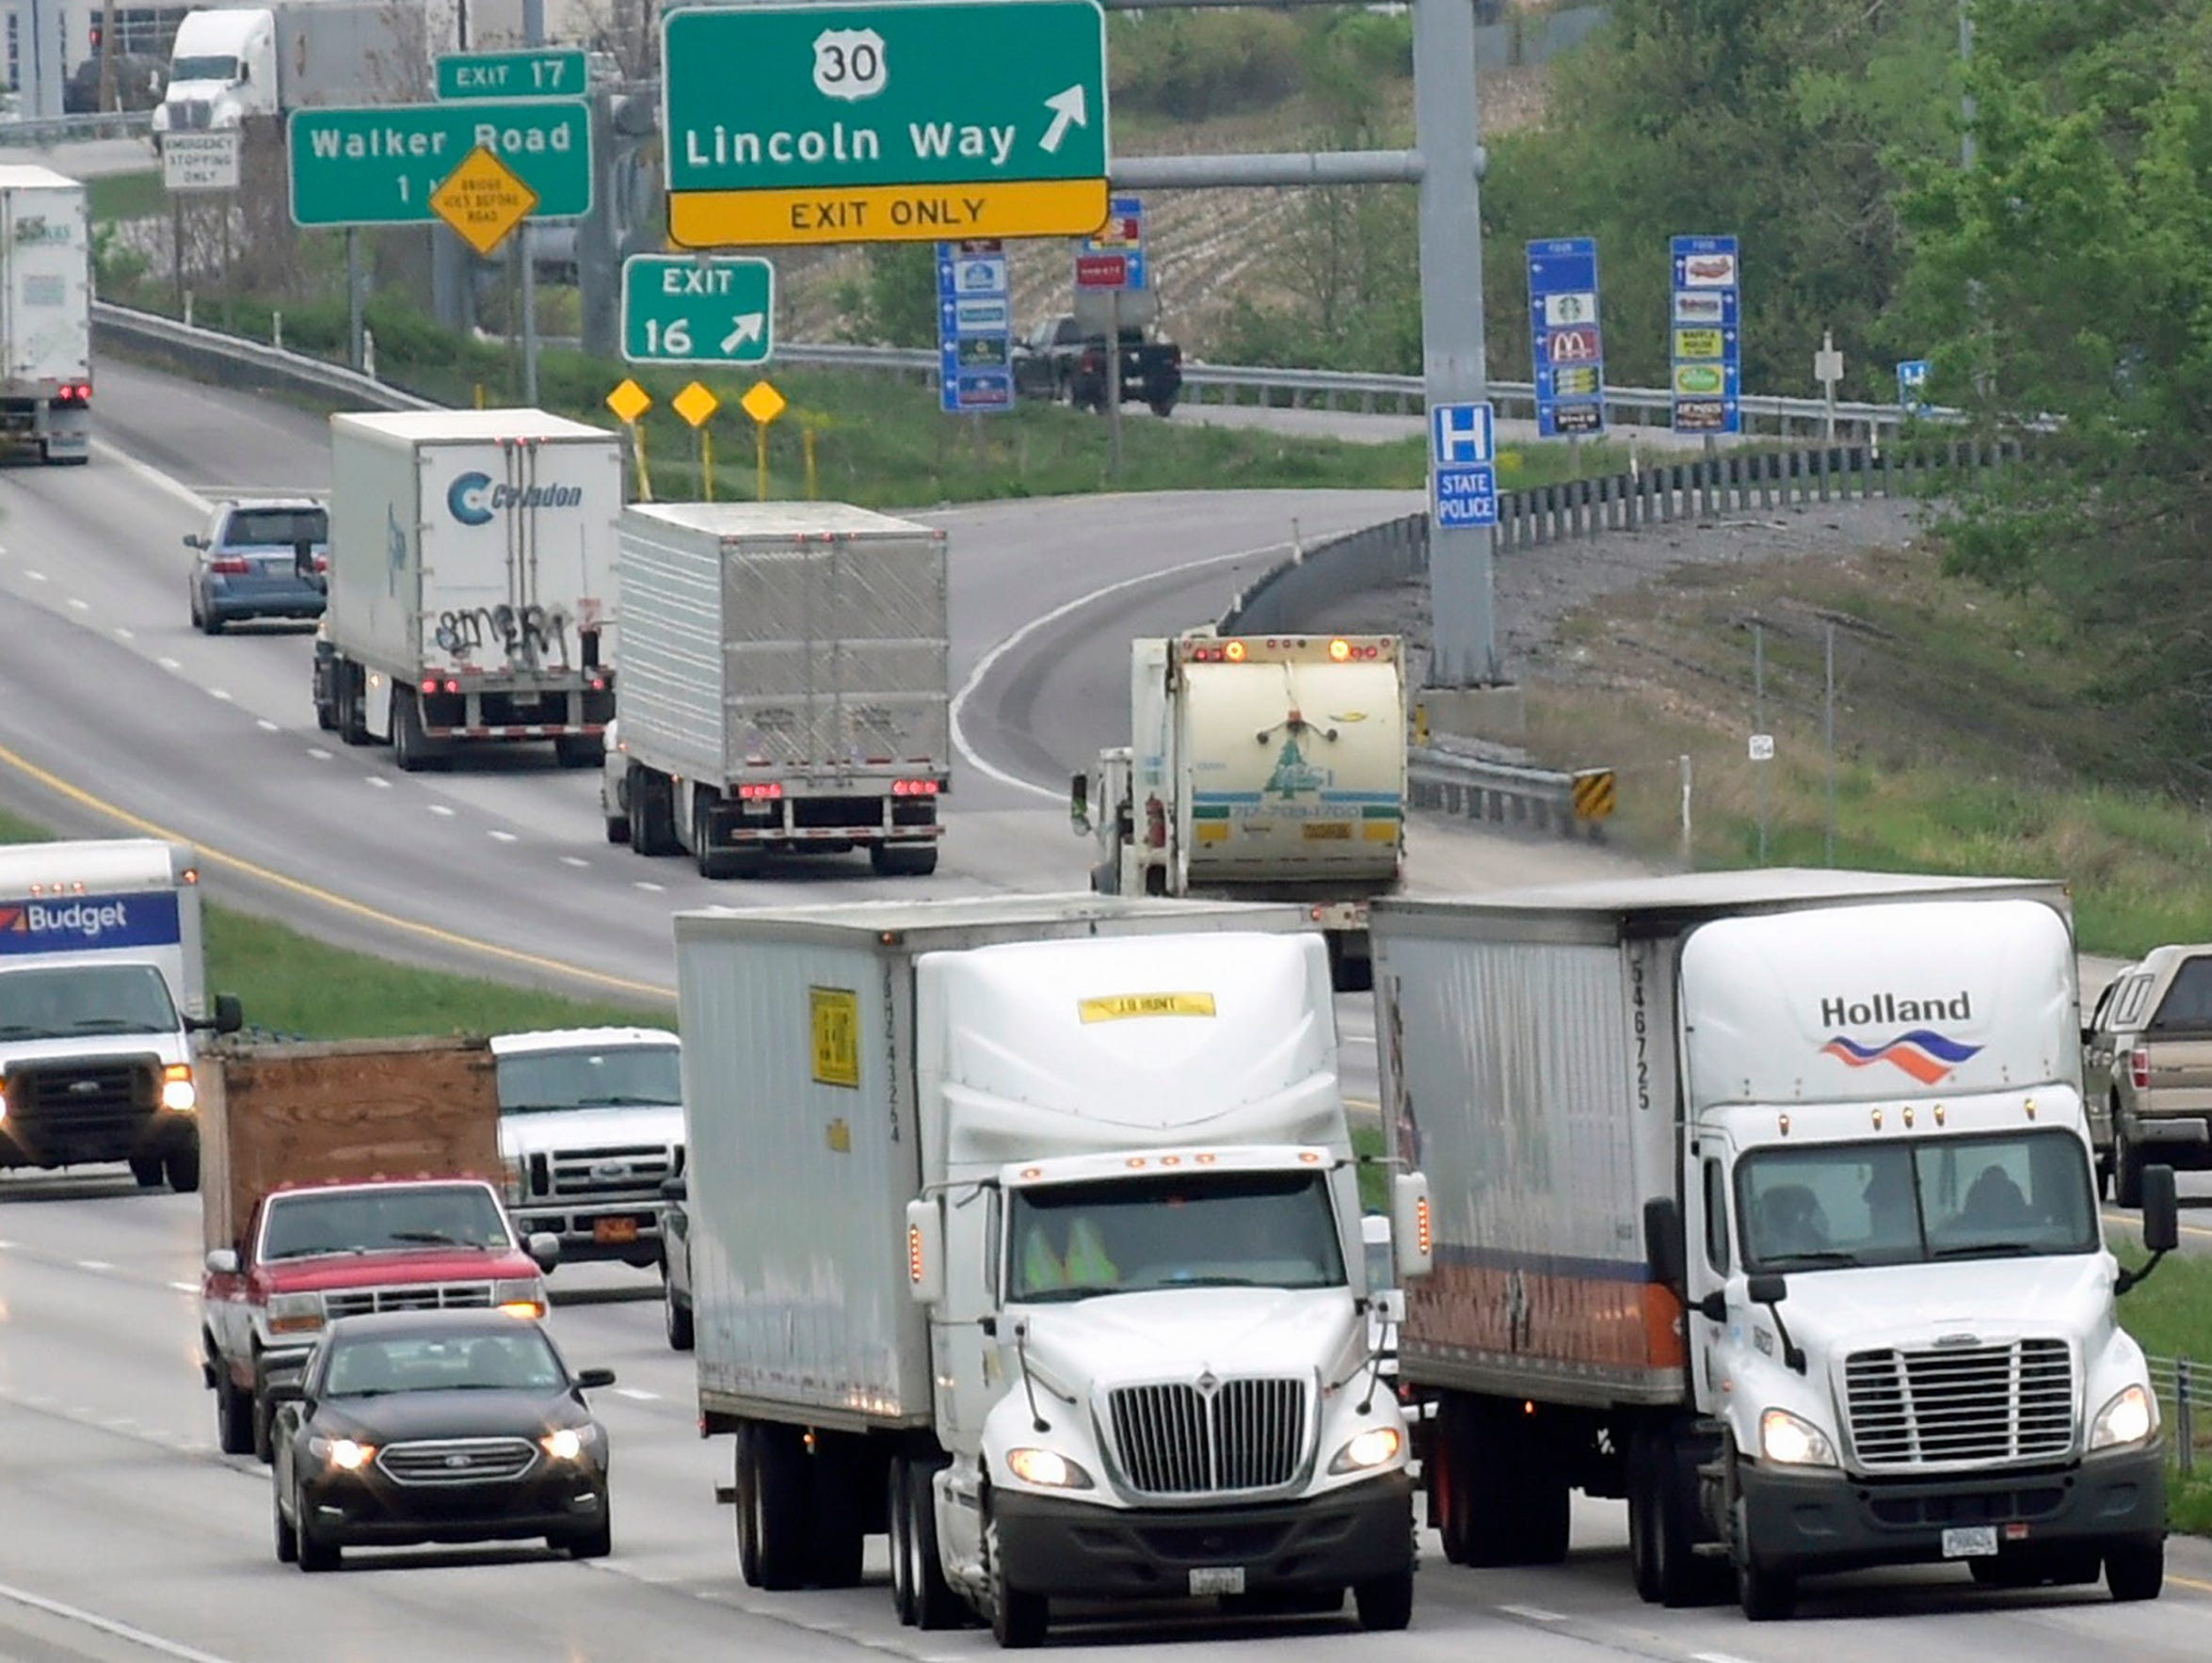 Tractor-trailers compete with passenger cars Thursday, May 5, 2016 on a stretch of Interstate 81 near Exit 16. Exit ramps and on-ramps have been connected in this area, between Wayne Avenue (Exit 14) and Walker Road (Exit 17), creating a third lane and helping to ease congestion.